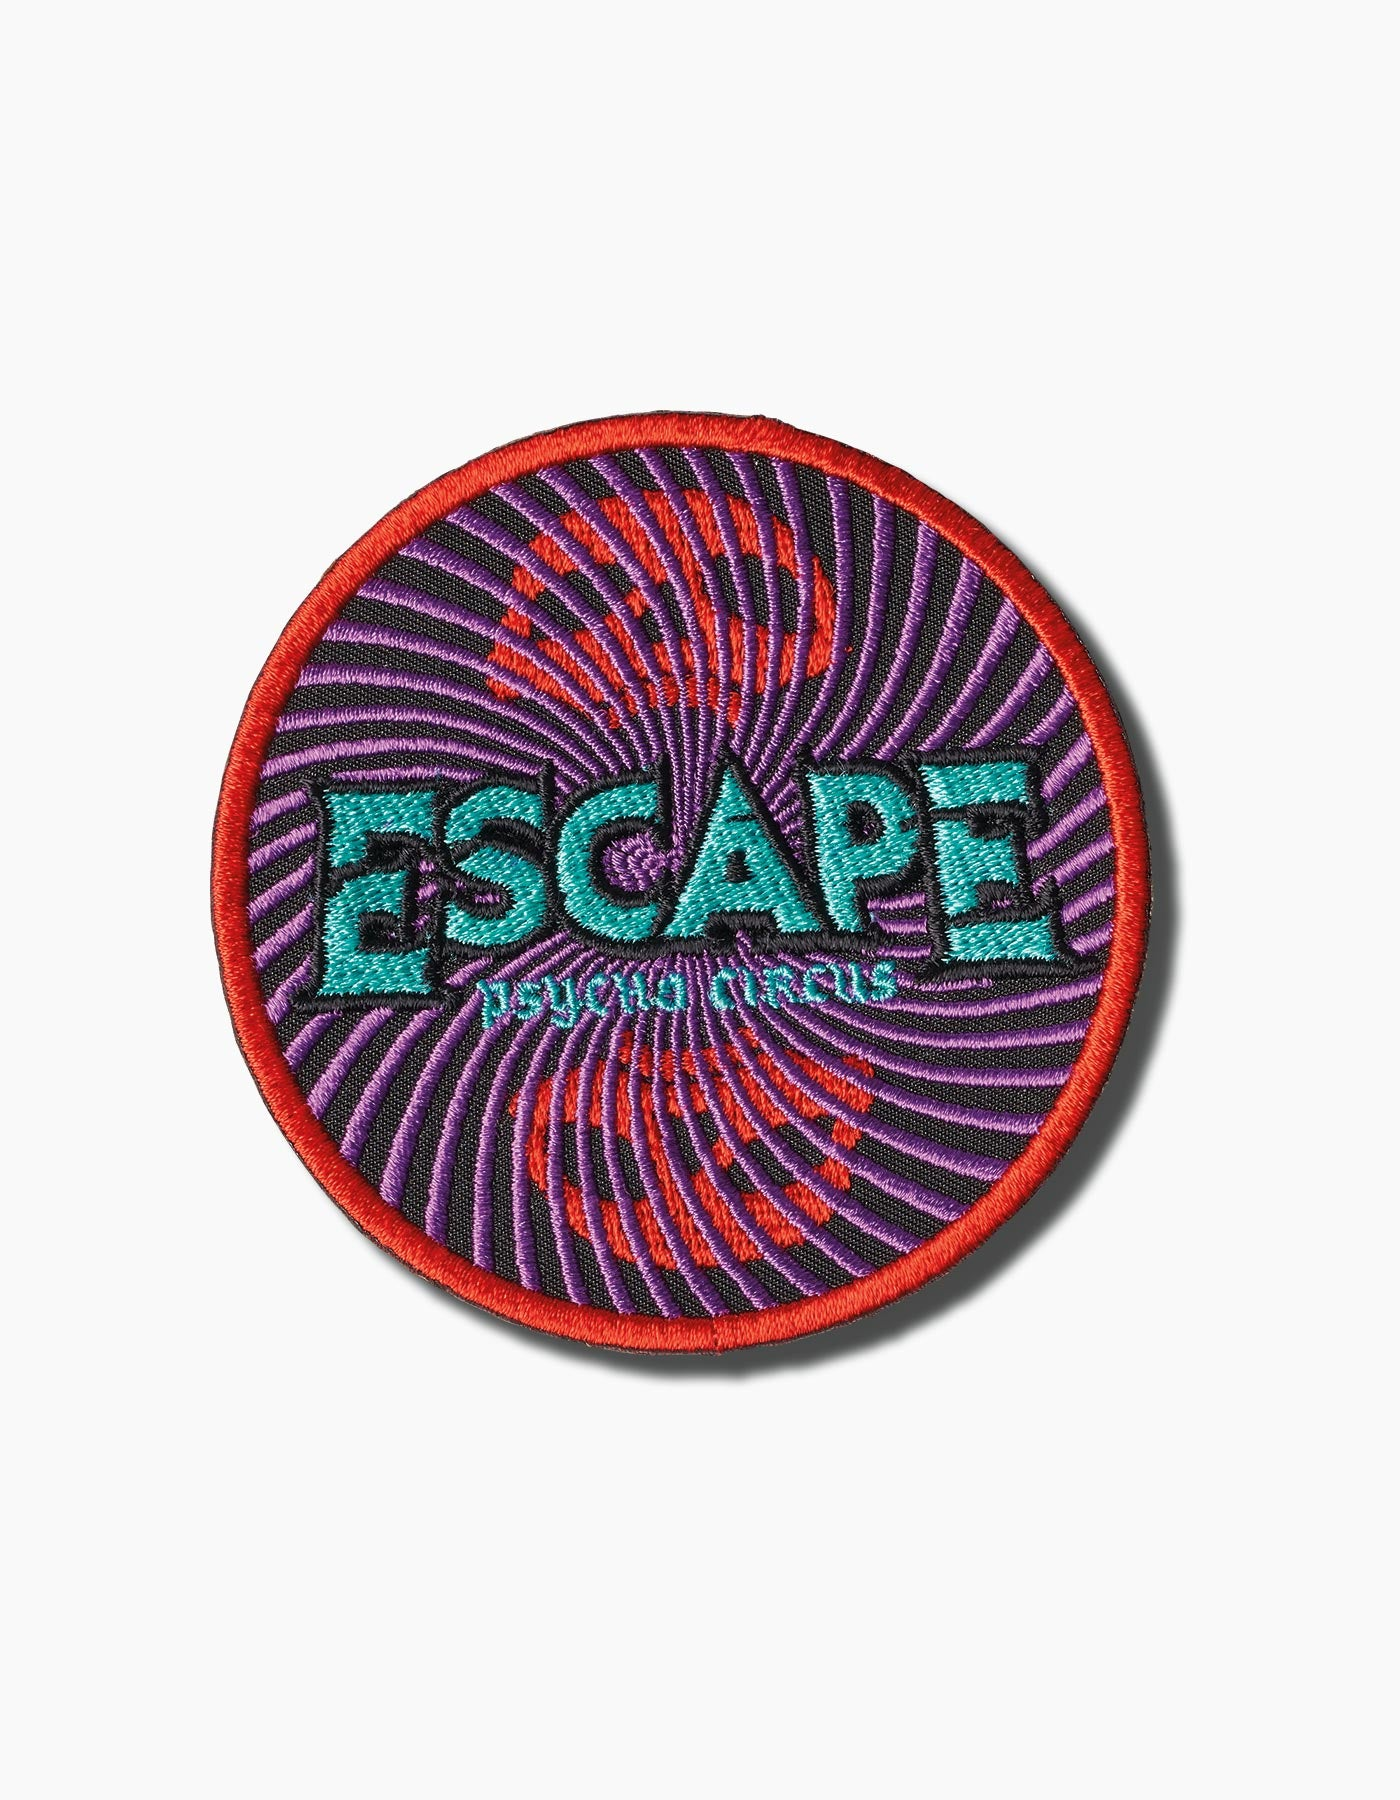 Escape Asylum Patch